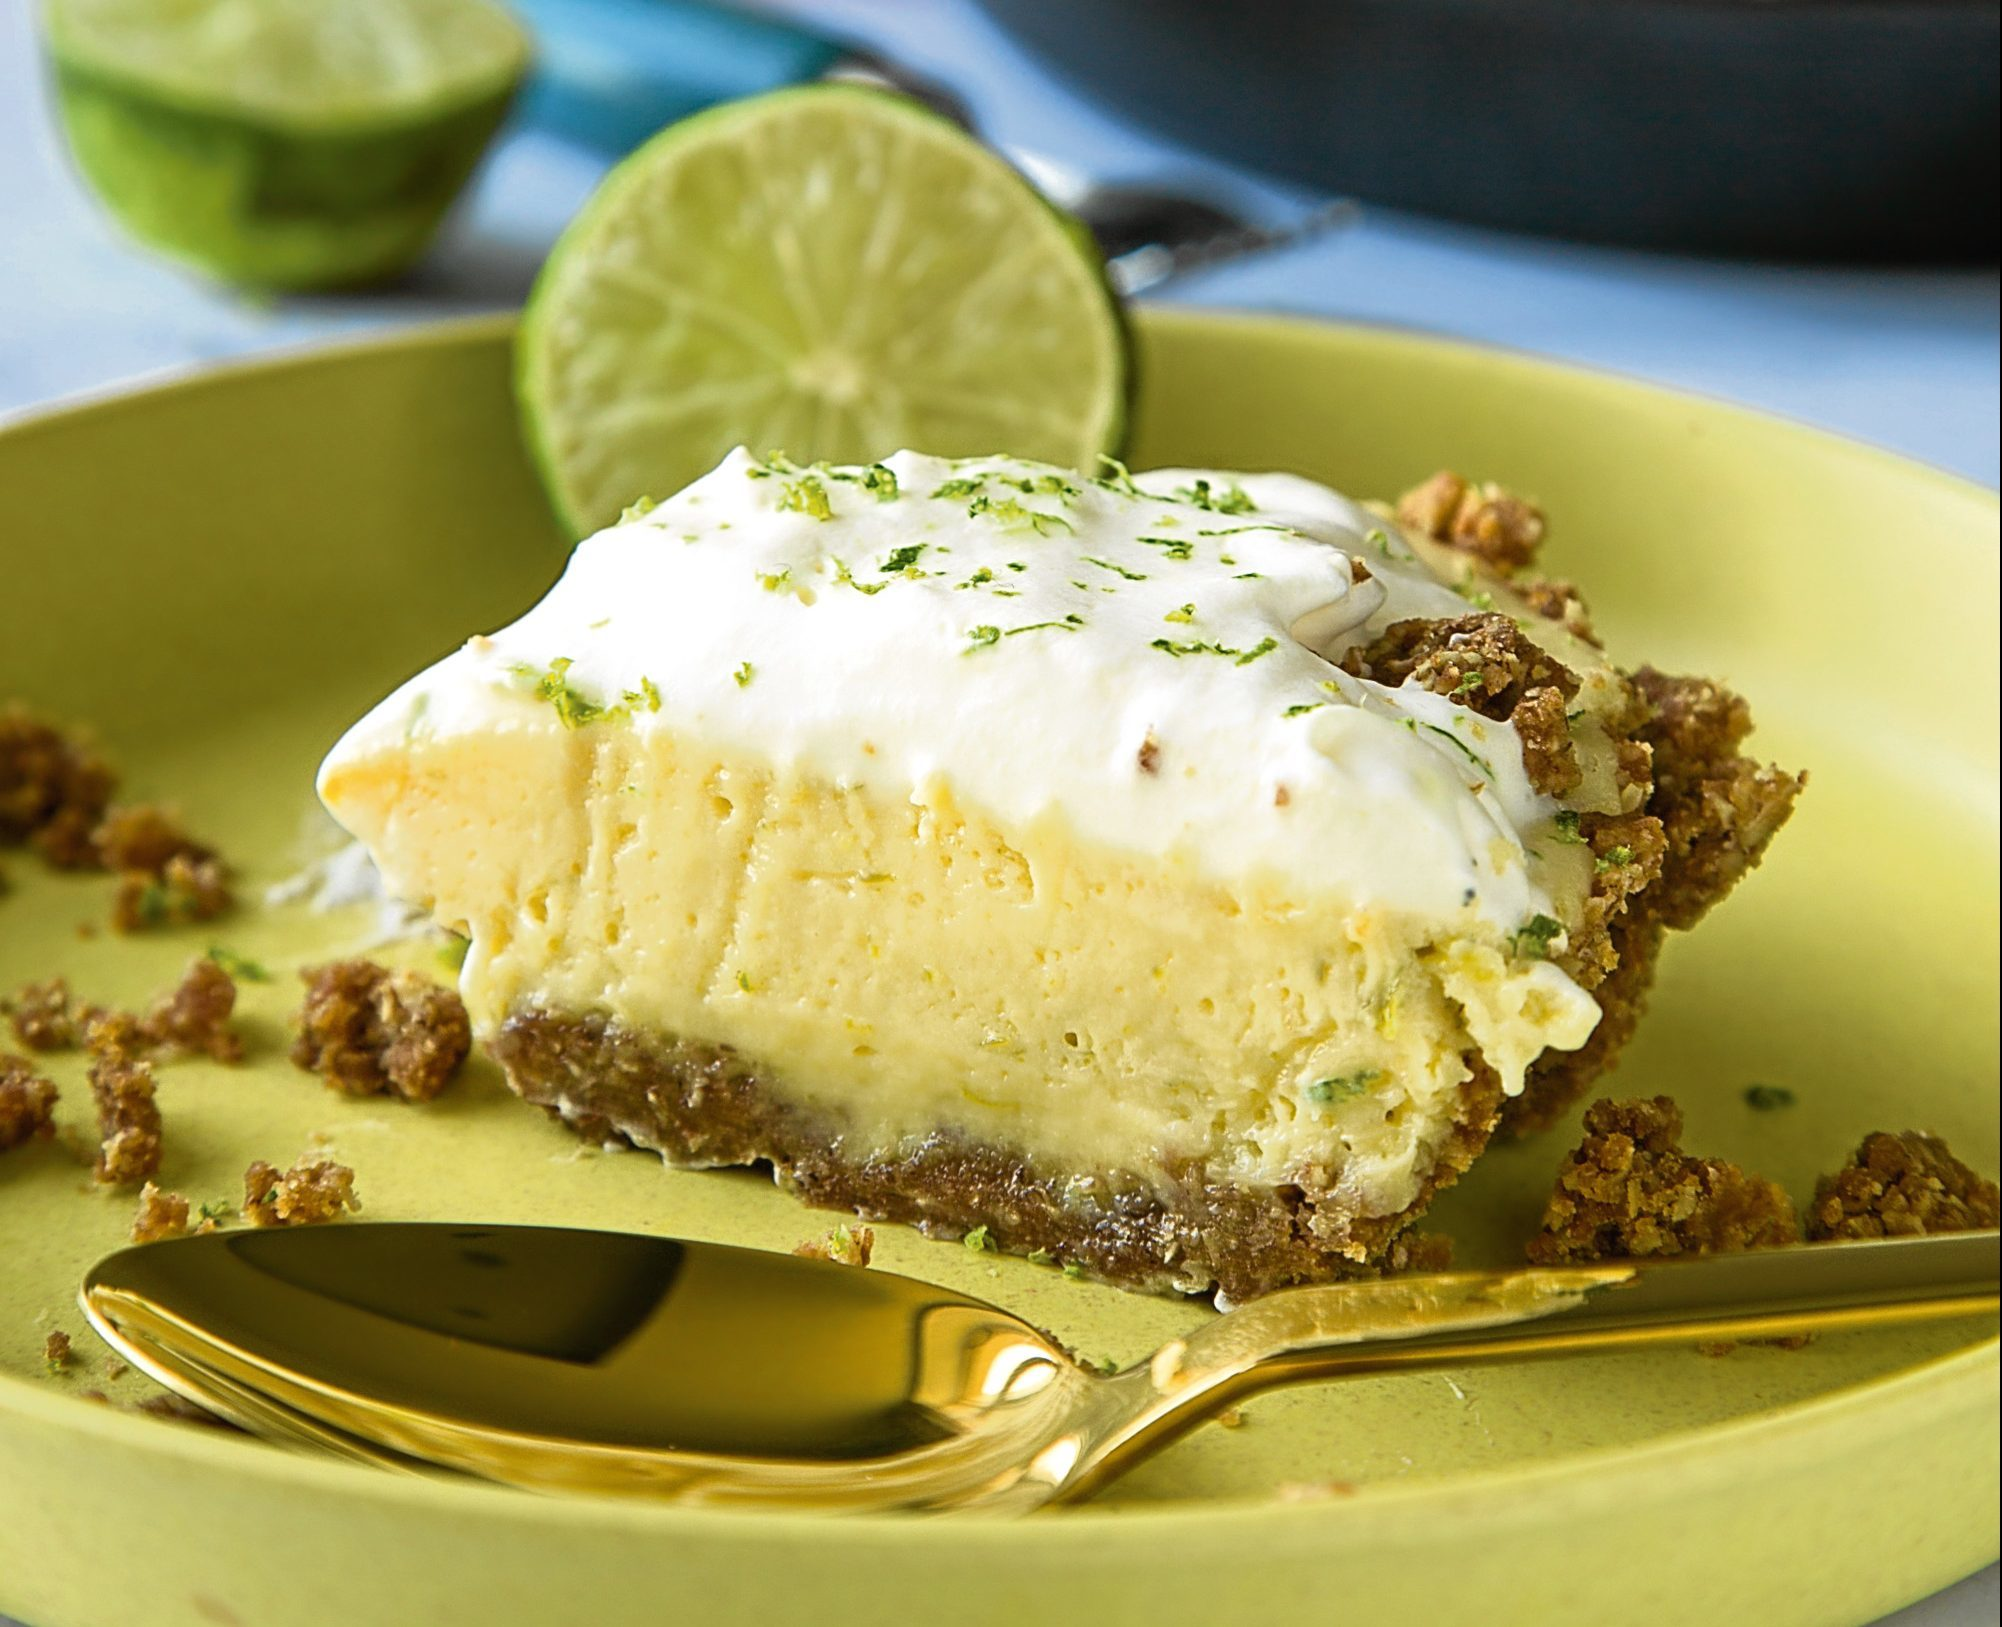 Key Lime Pie from Simply Simon's - The Diner Cookbook (Sean Cahill)